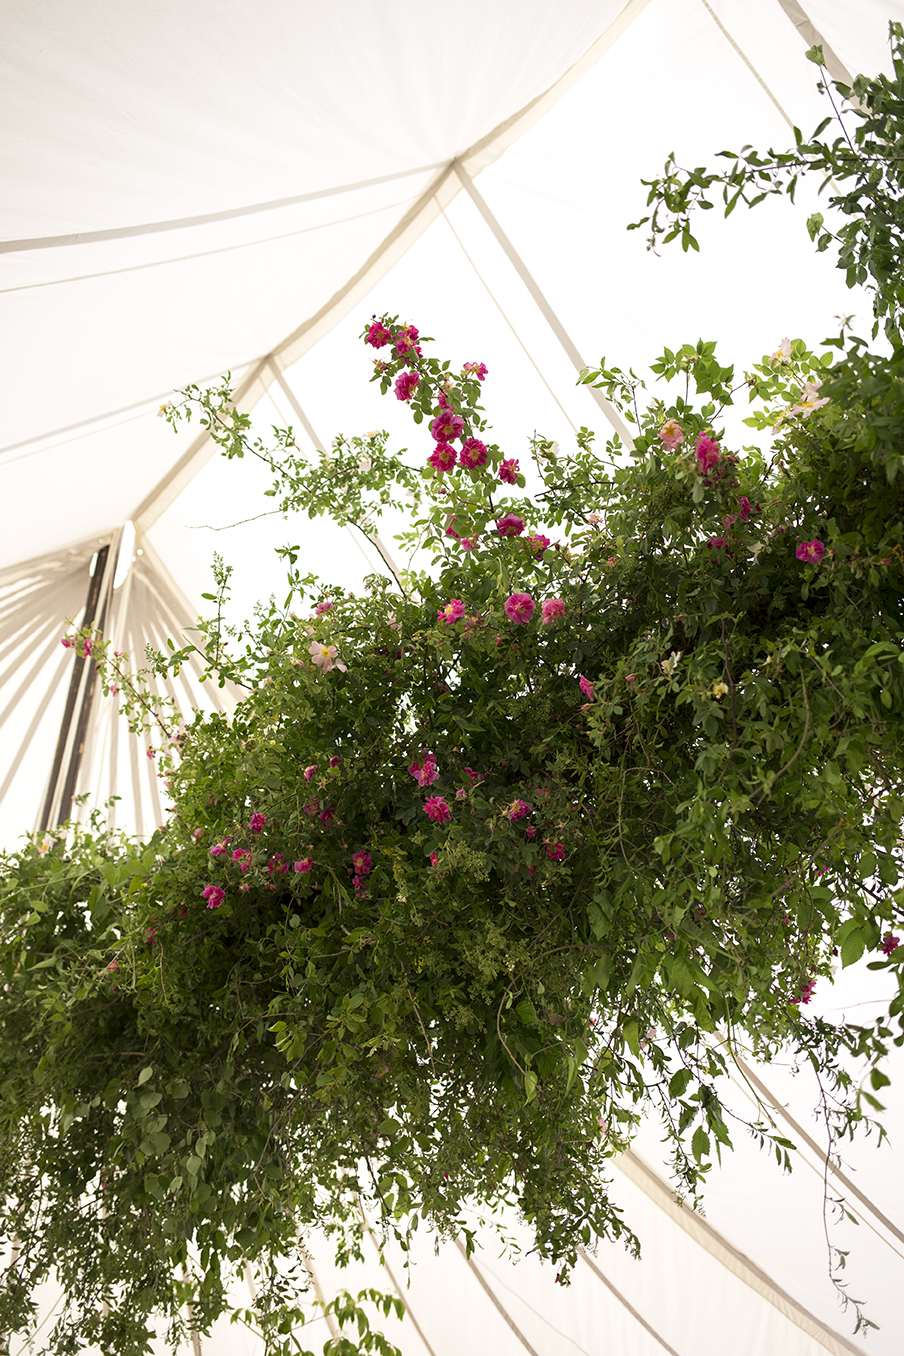 Early June in the Cotswolds. A hanging 20ft installation of English foliage and rambling roses dressed this majestic  LPM Bohemia  canvas tent on the upper lawn of The  Cowley Manor  Hotel in Gloucestershire, suspended high over the dance floor and dining tables. Planning by  Riot Events .